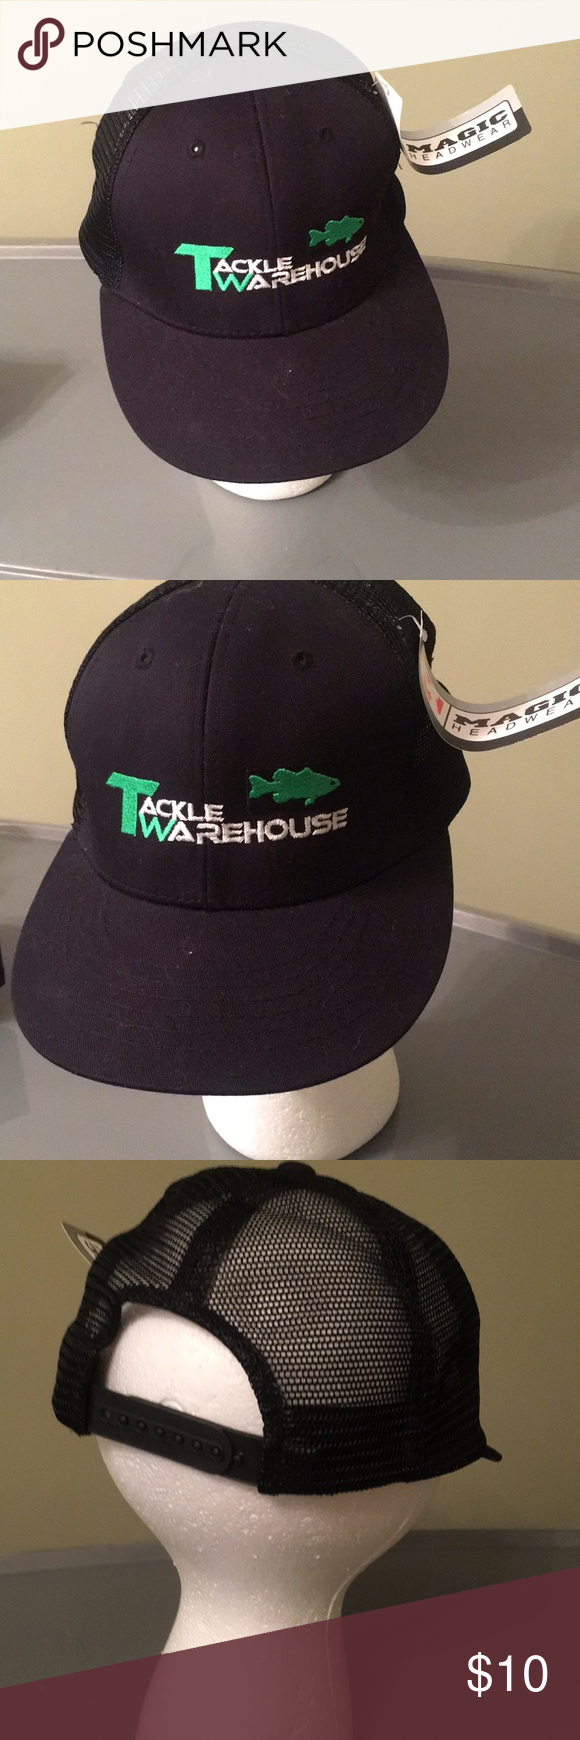 609e6bf432649 Tackle Warehouse hat Black fishing hat by Tackle Warehouse. NWT‼ magic  headware Accessories Hats